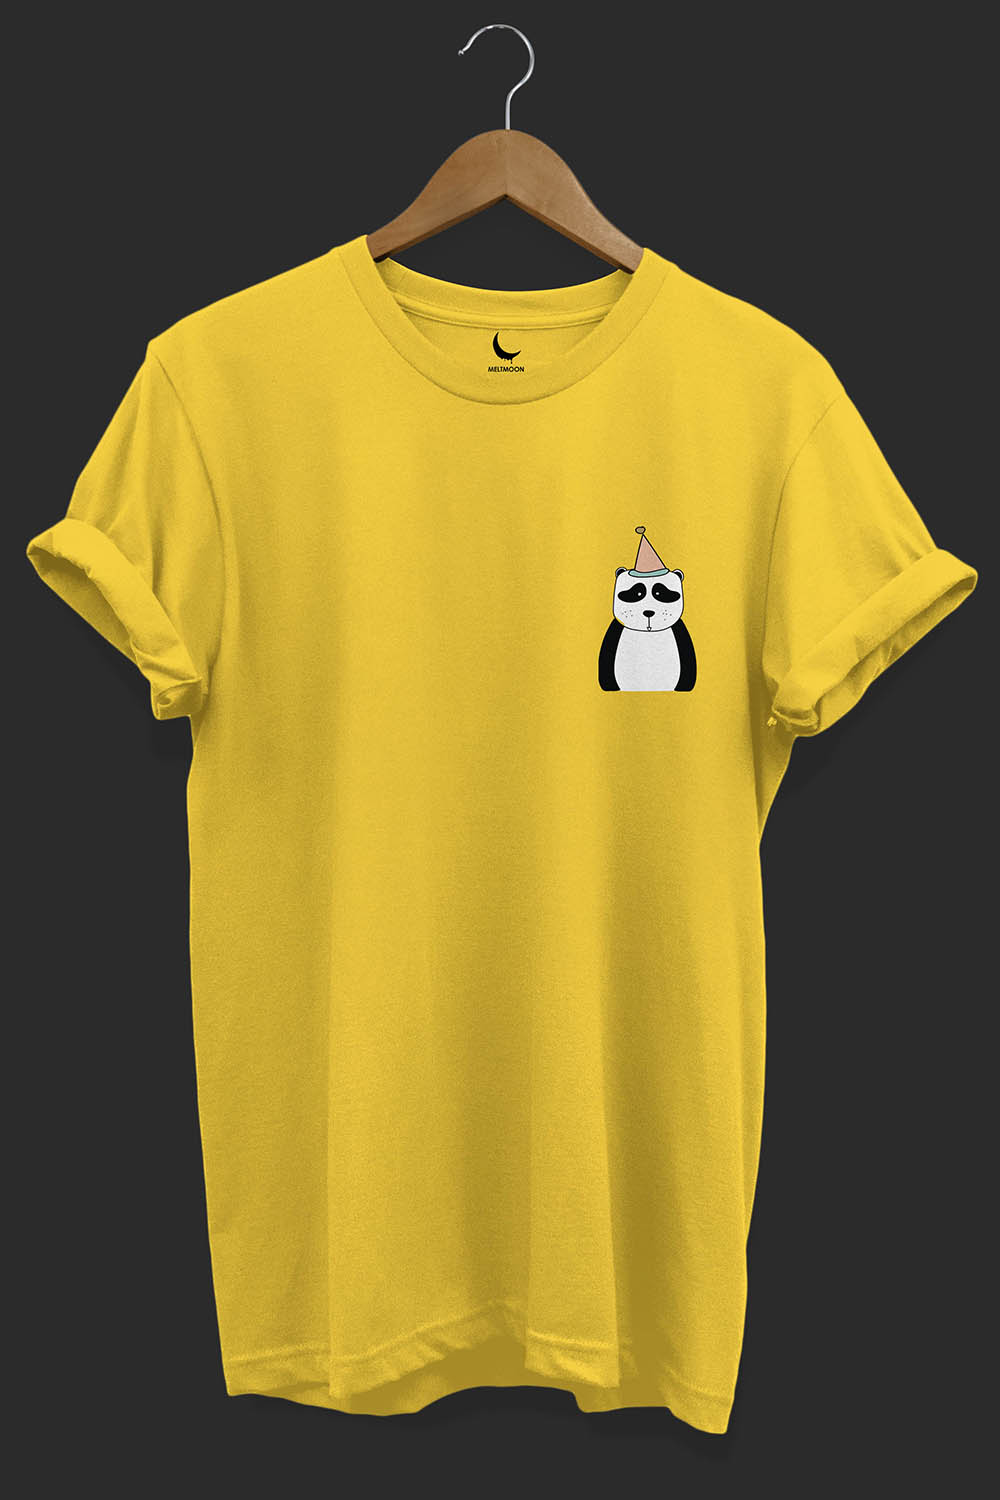 Pocket Panda Graphic T-shirt